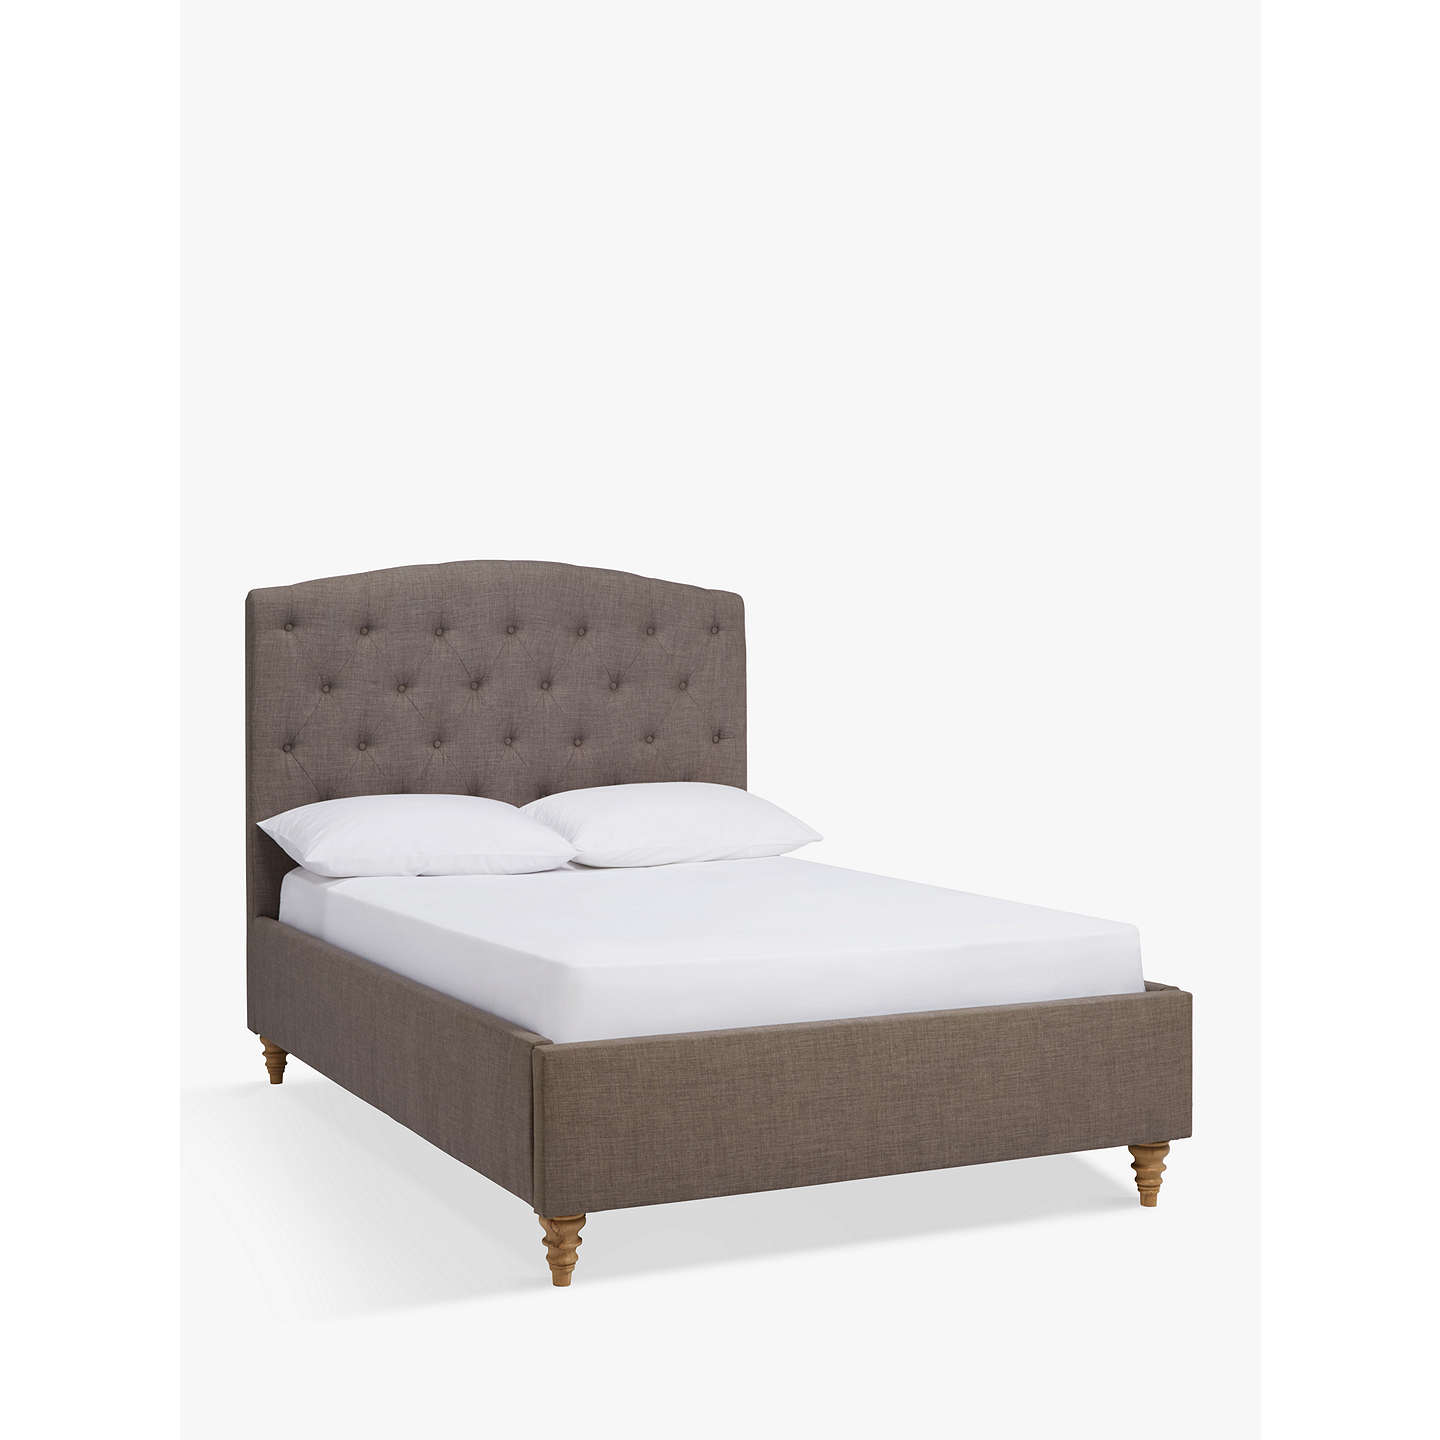 John Lewis Rouen Bed Super King